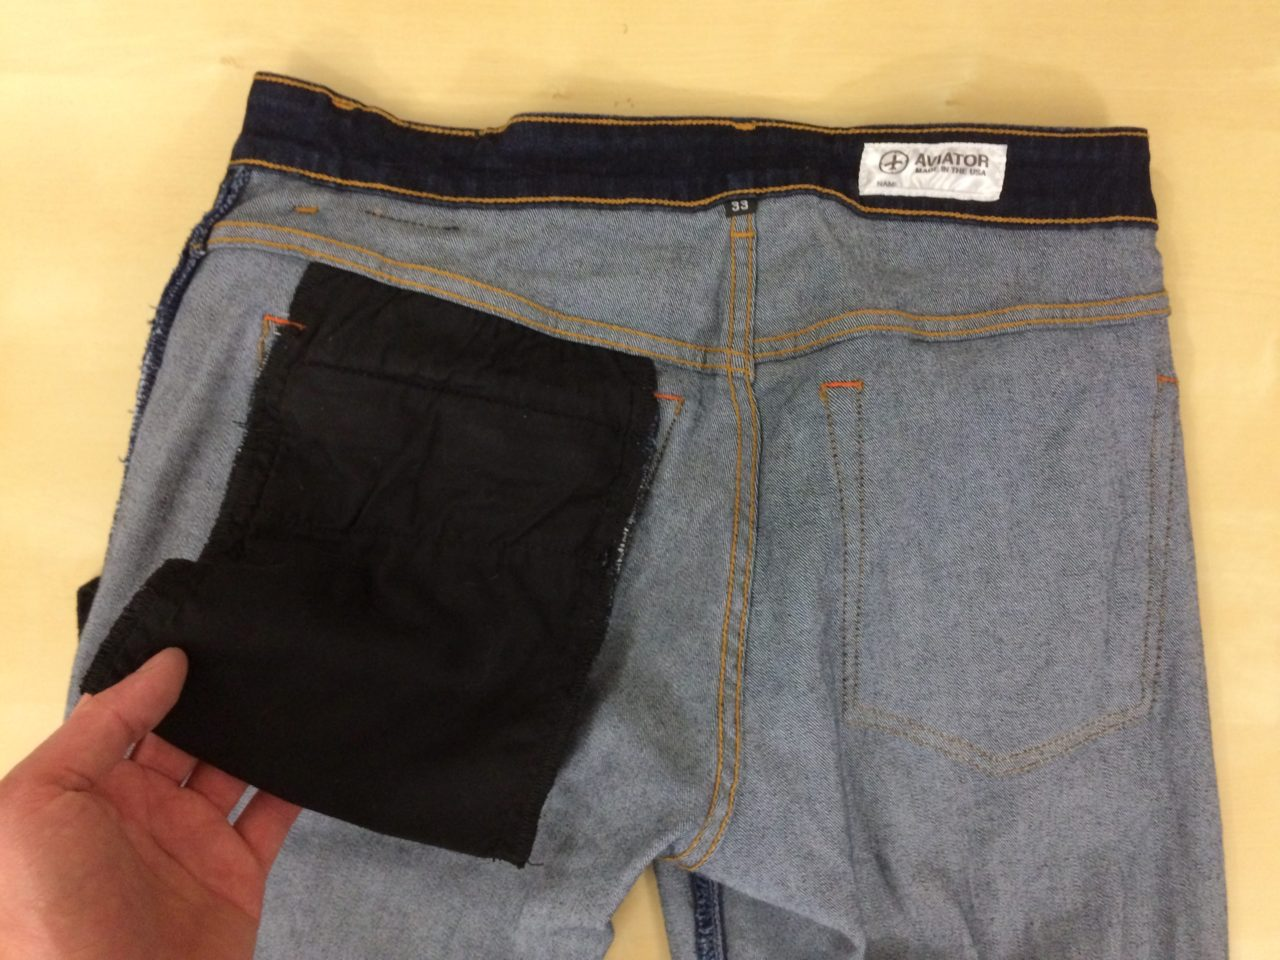 Aviator USA Jeans hidden pocket interior